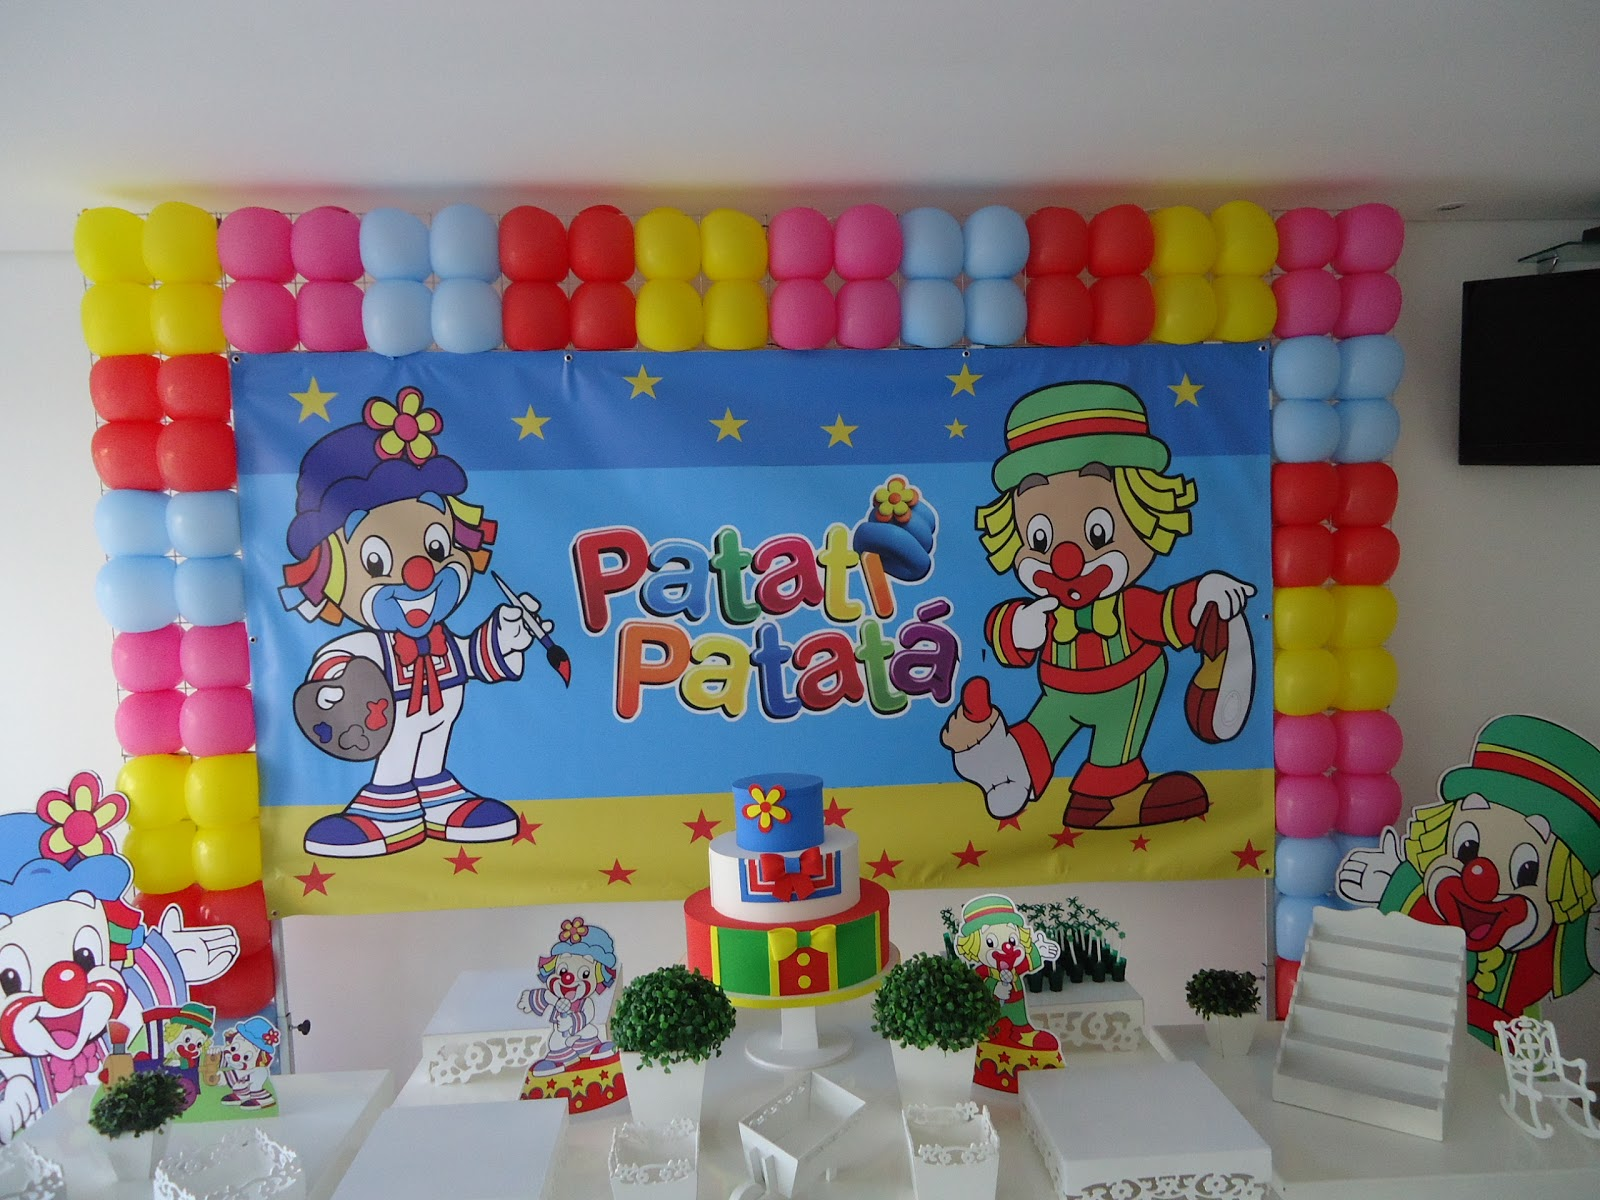 Decora    O Clean Patati Patat     Banner Novo S   Personagens E